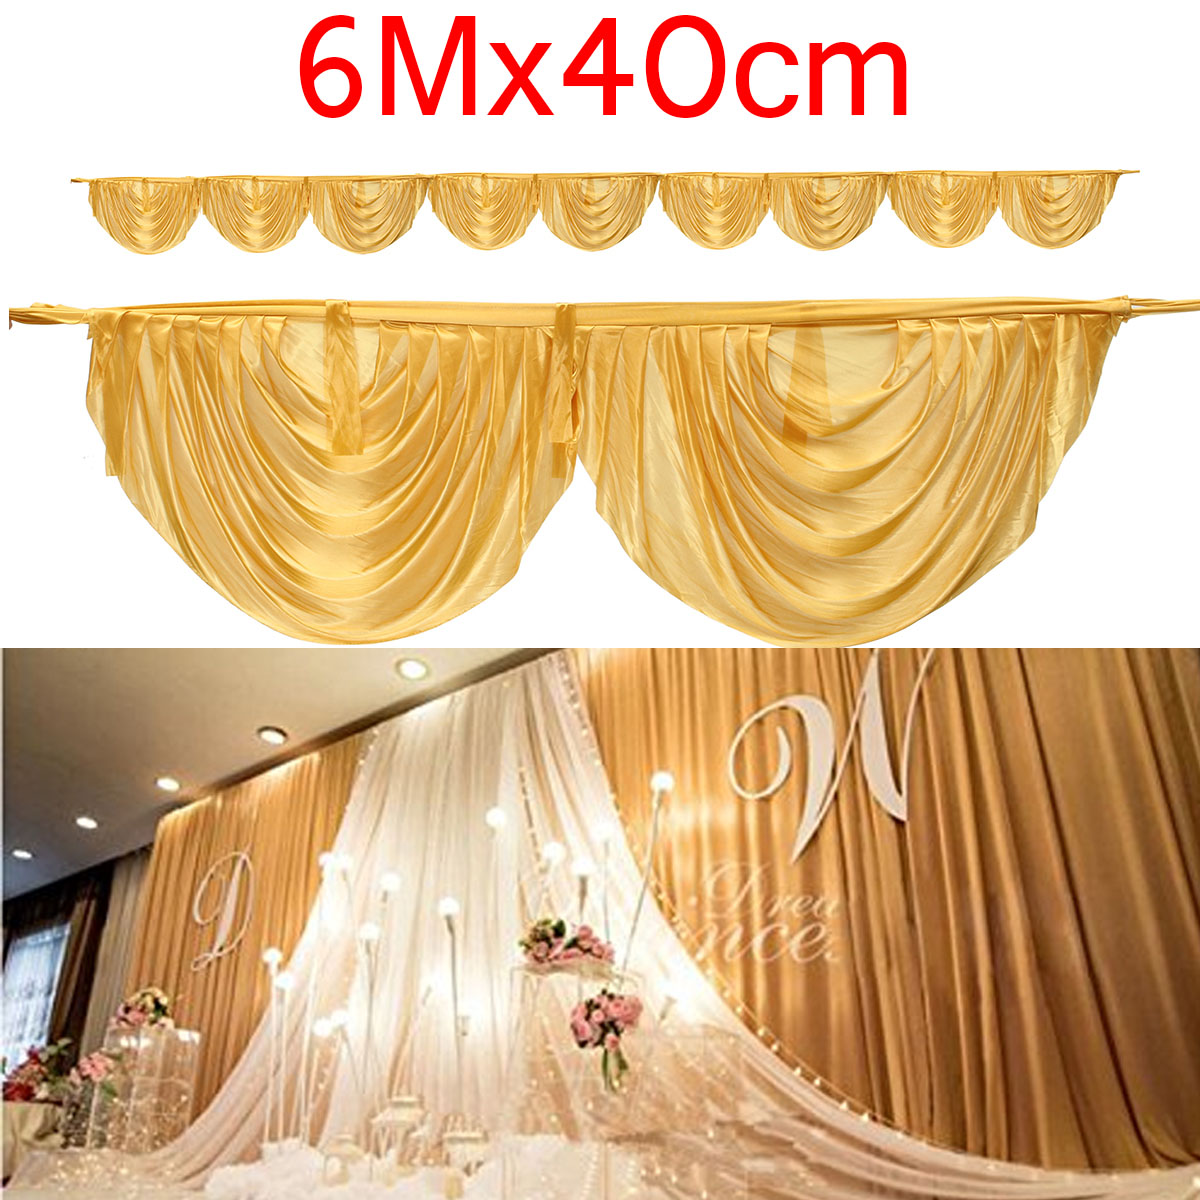 600x40cm Silk Fabric Wedding Backdrops Curtains Swags DIY Wedding Decoration Party Stage Background Cloth Party Favors Gold600x40cm Silk Fabric Wedding Backdrops Curtains Swags DIY Wedding Decoration Party Stage Background Cloth Party Favors Gold